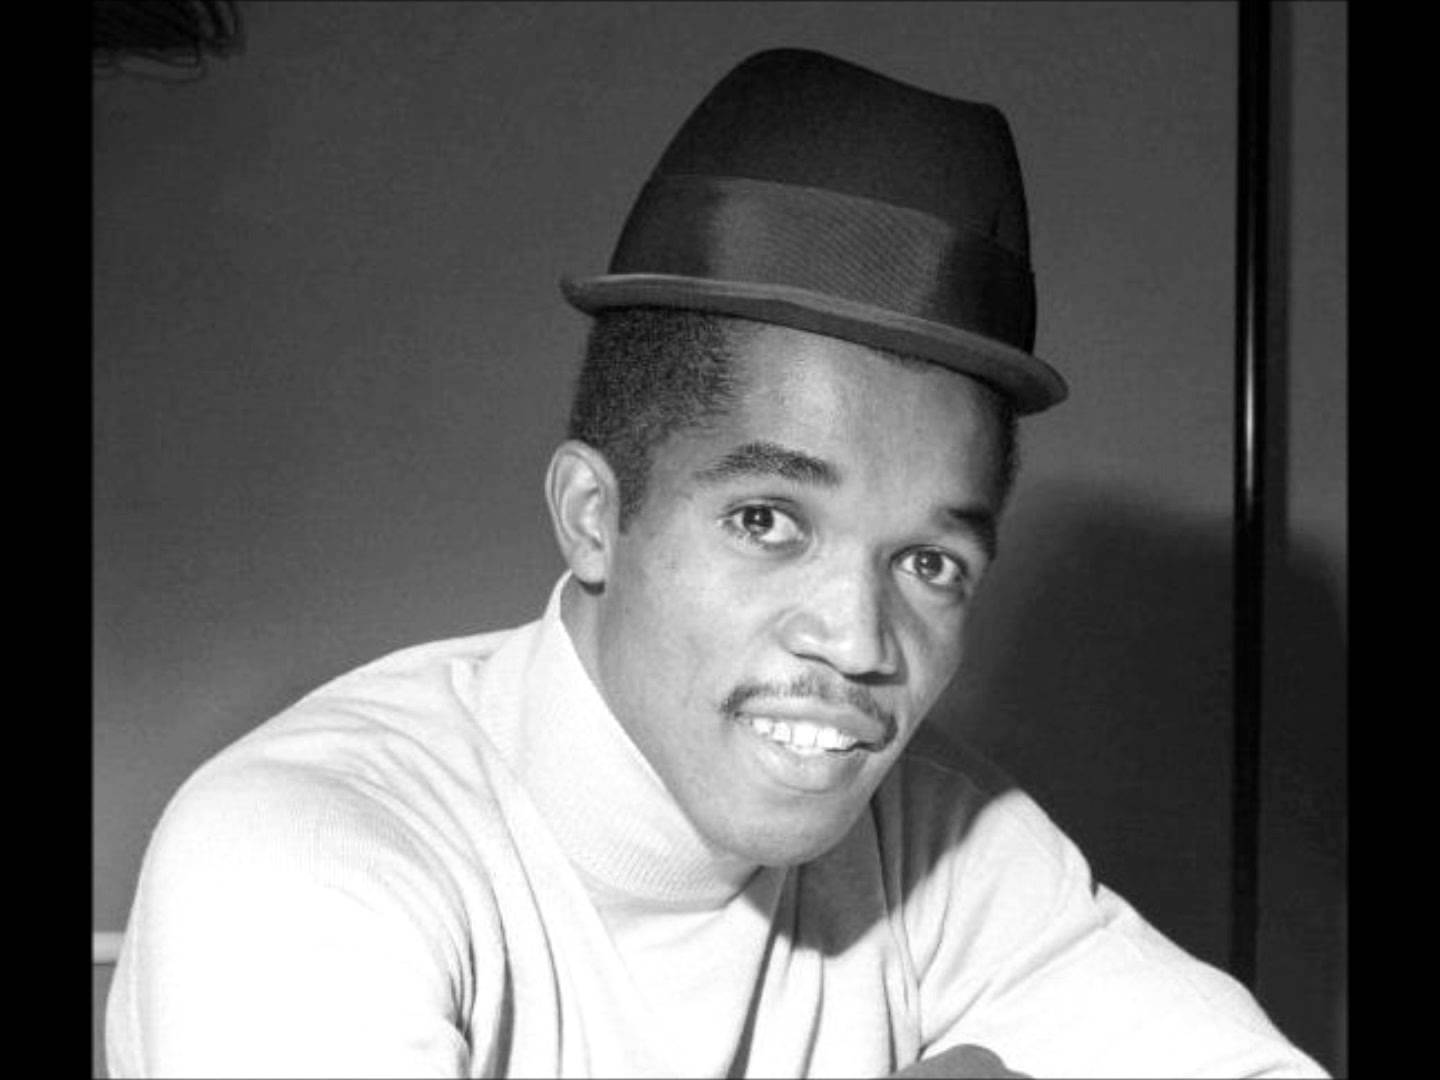 http://ajournalofmusicalthings.com/wp-content/uploads/2016/09/Prince-Buster.jpg